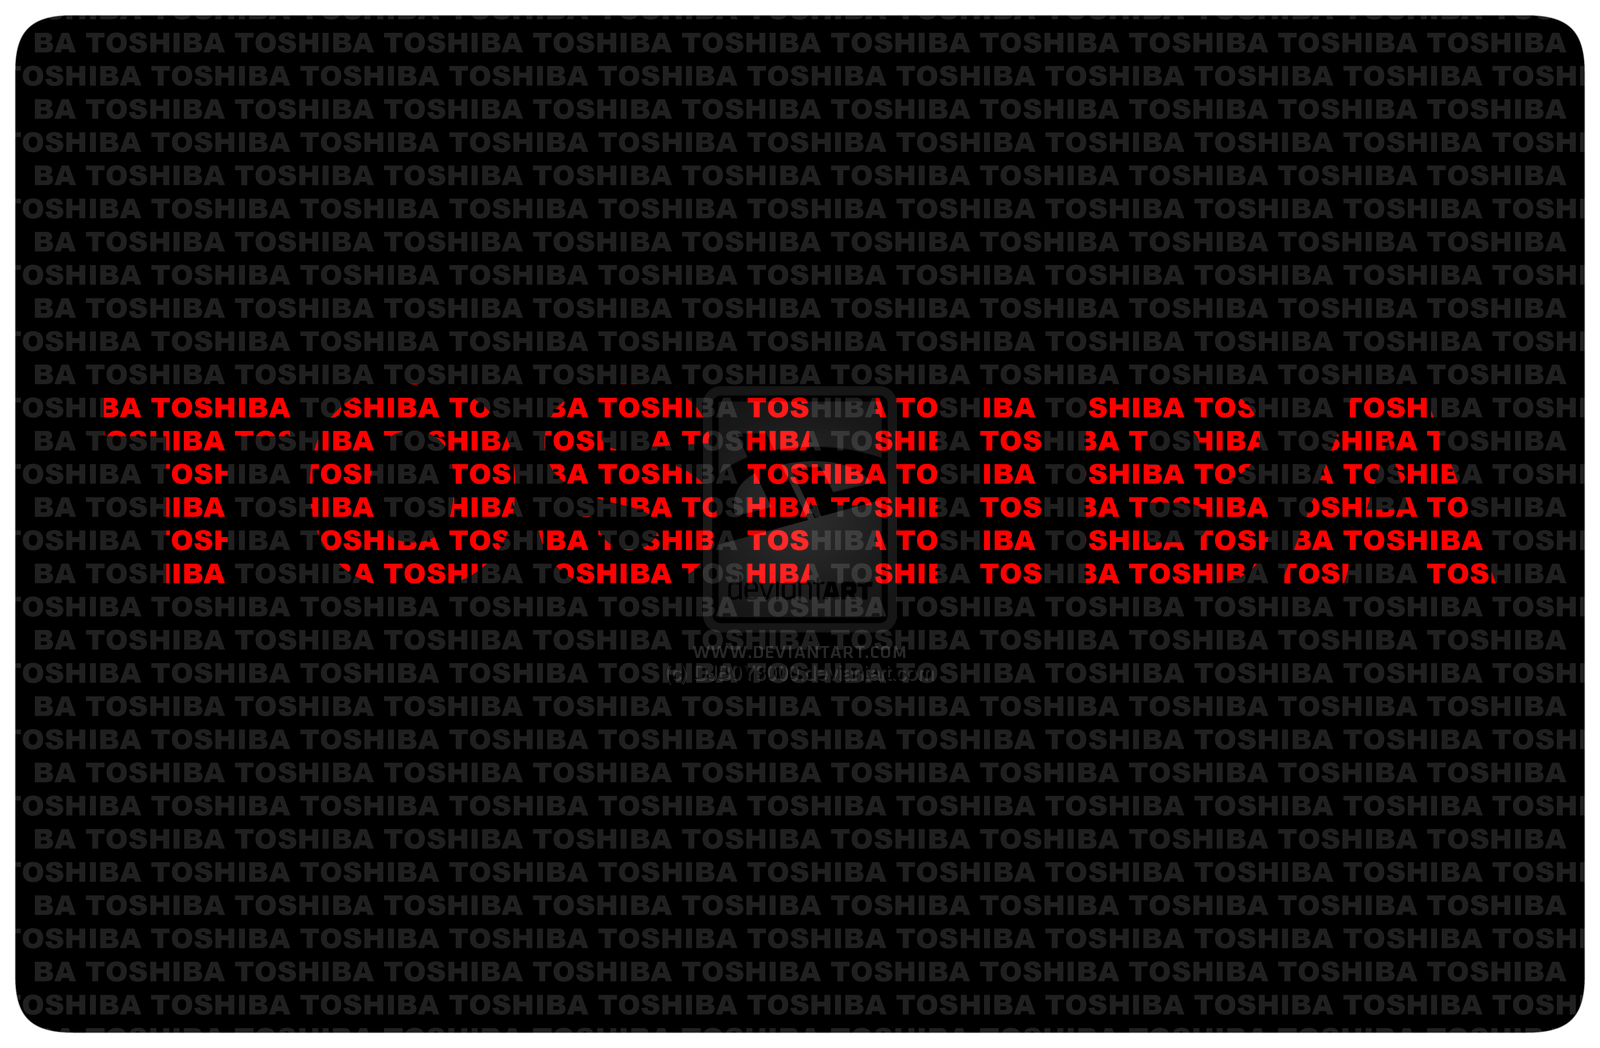 Toshiba Desktop Backgrounds HD Wallpapers Wide Page Of 1920